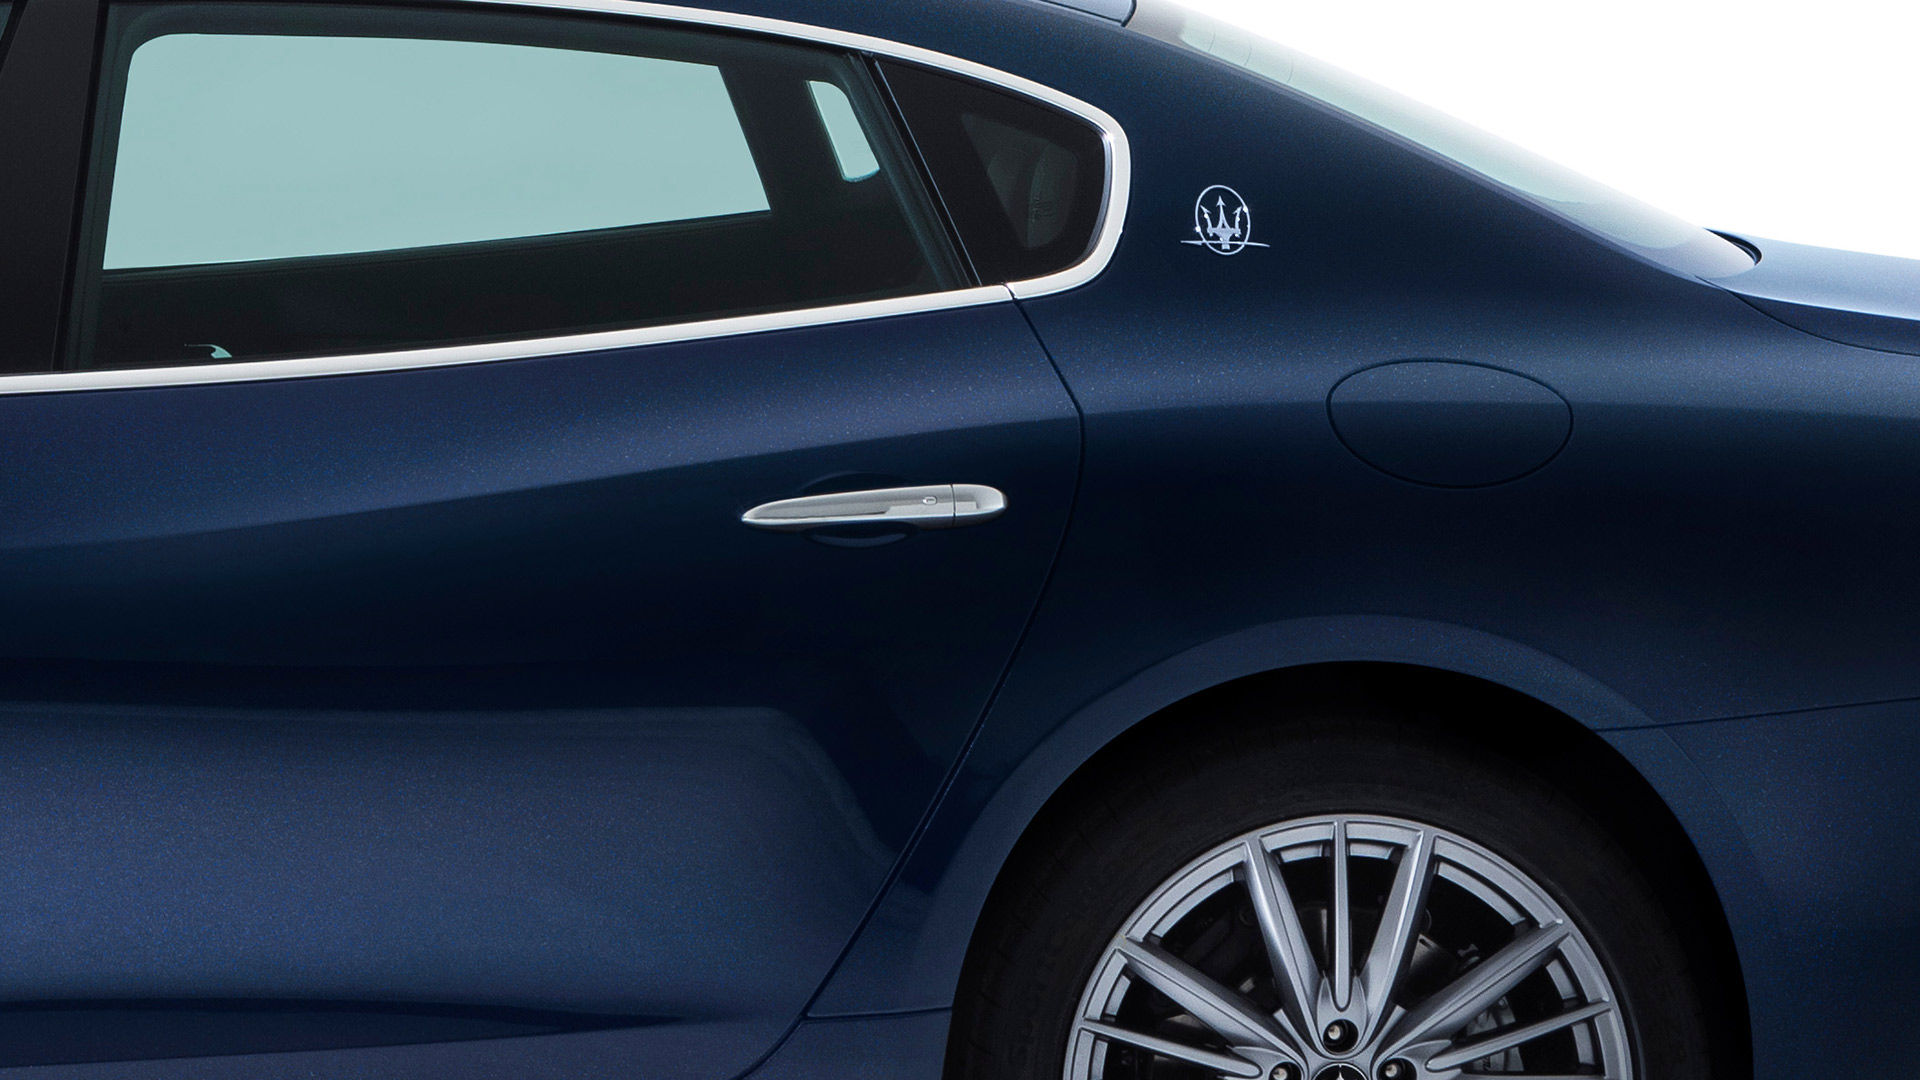 Maserati Quattroporte - Soft-Close-System - Türgriff